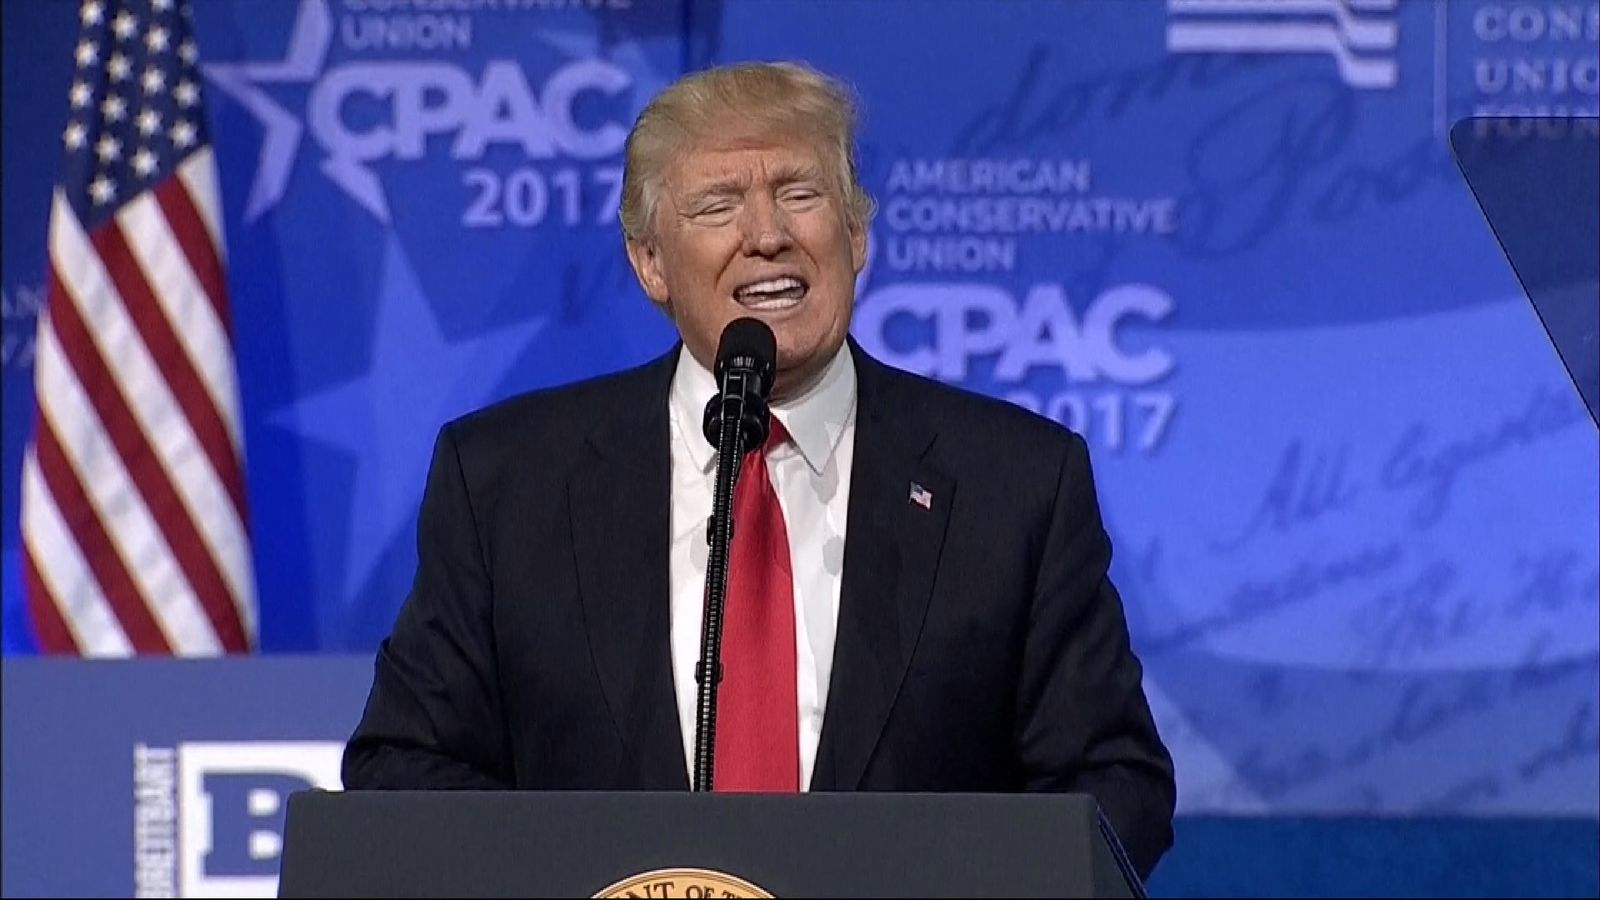 Trump speaks at the CPAC conference